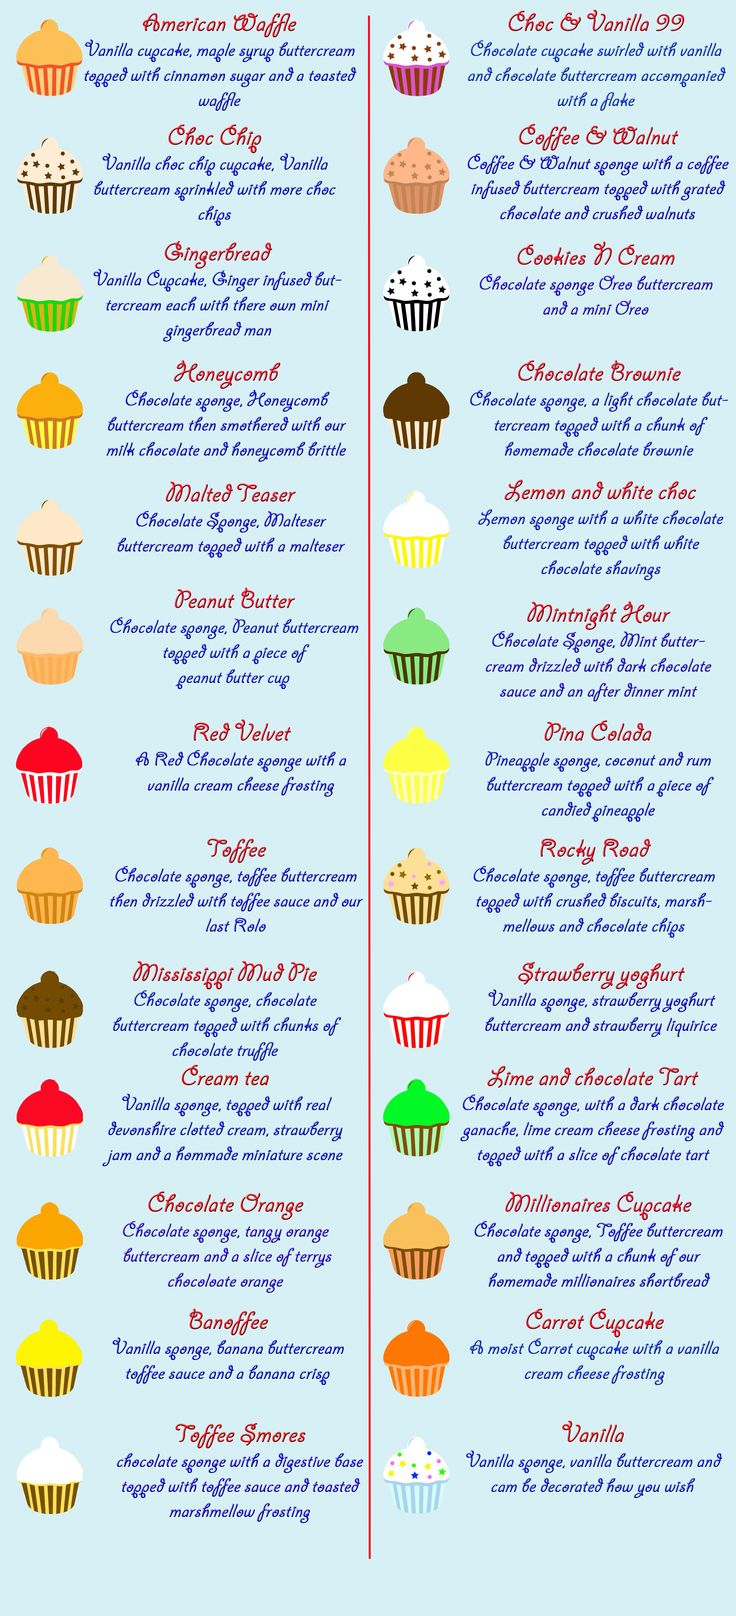 Click To Discover The Secret To Get Rid Of Diabetes FOREVER, Cupcakes Cakes - Torquay South Devon - Cupcake Menu , #diabetes, #diabetesrecipes, #diabetesdiet